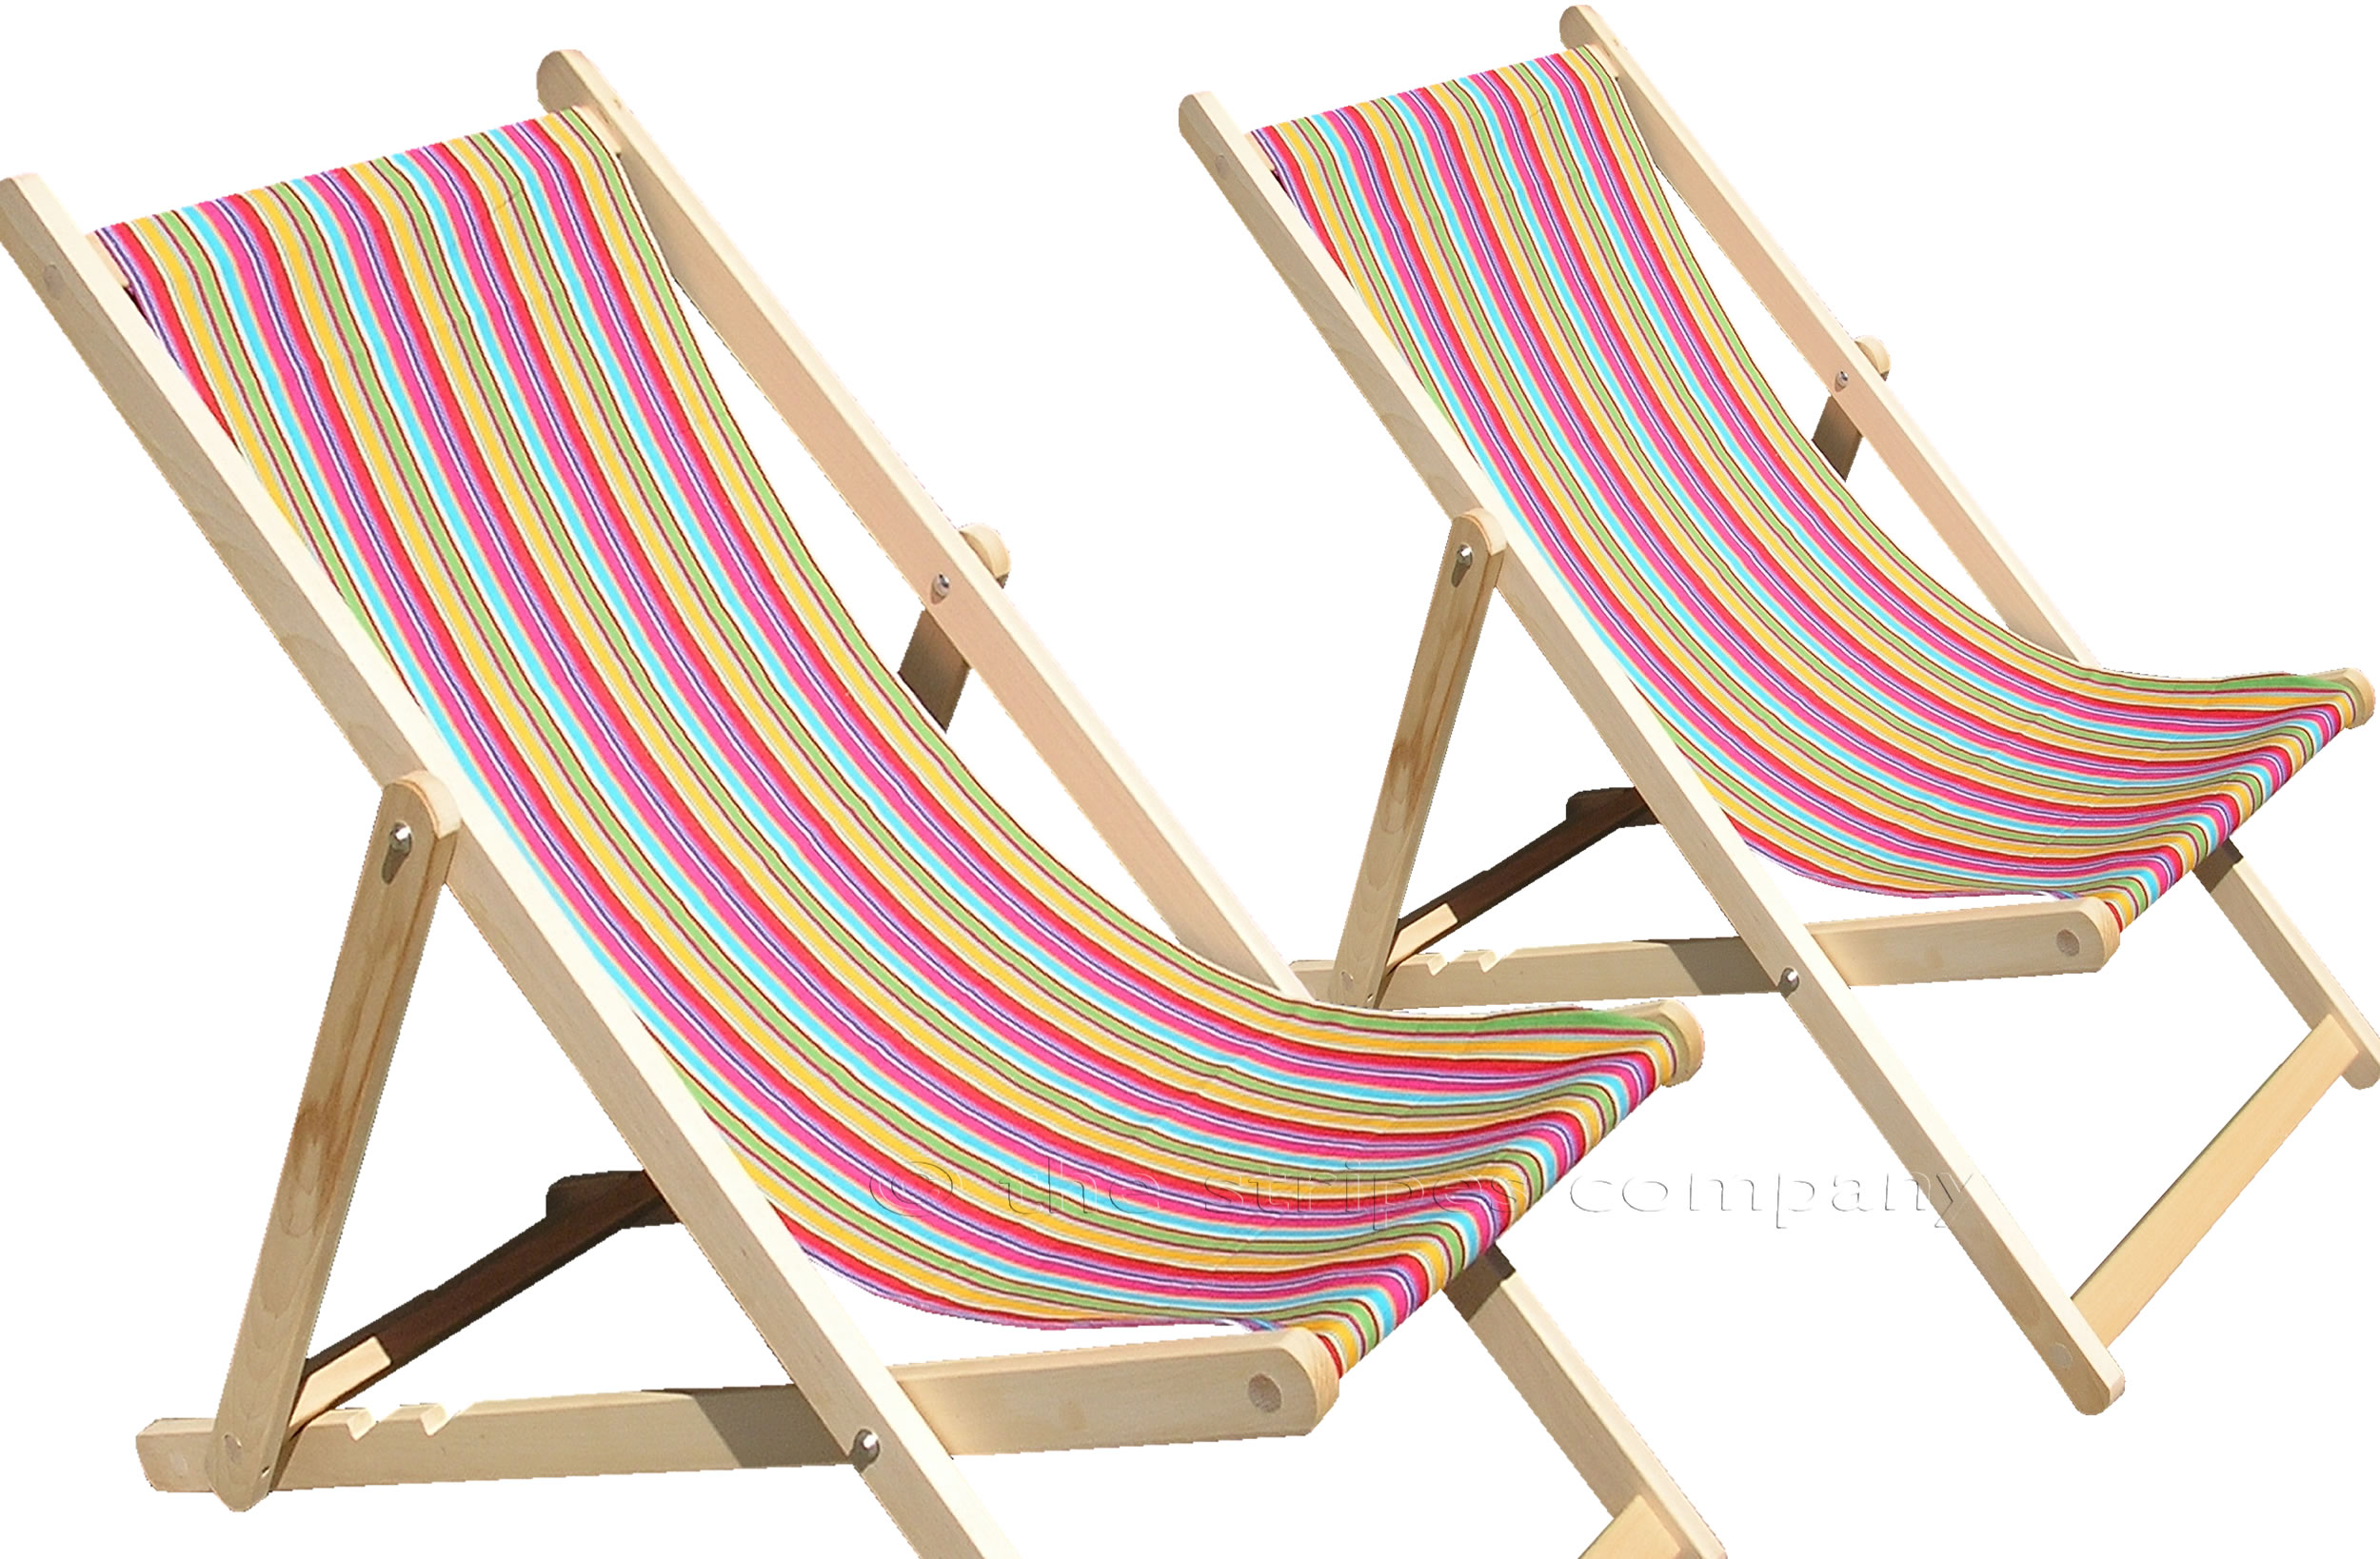 Karting Pink Deckchair Canvas Fabric The Stripes Company UK